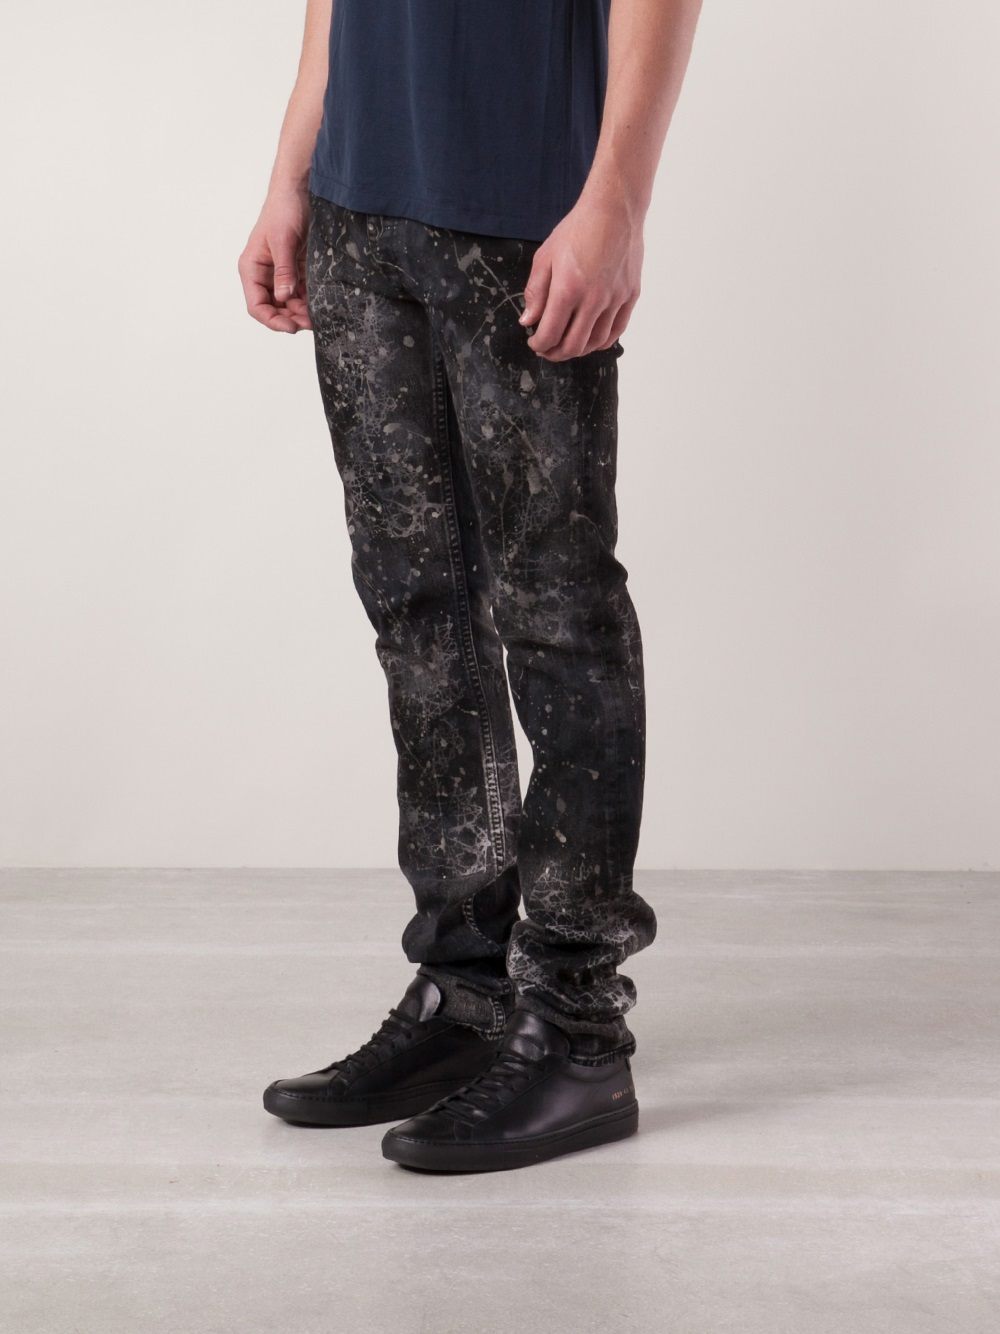 Camouflage Skinny Jeans For Men